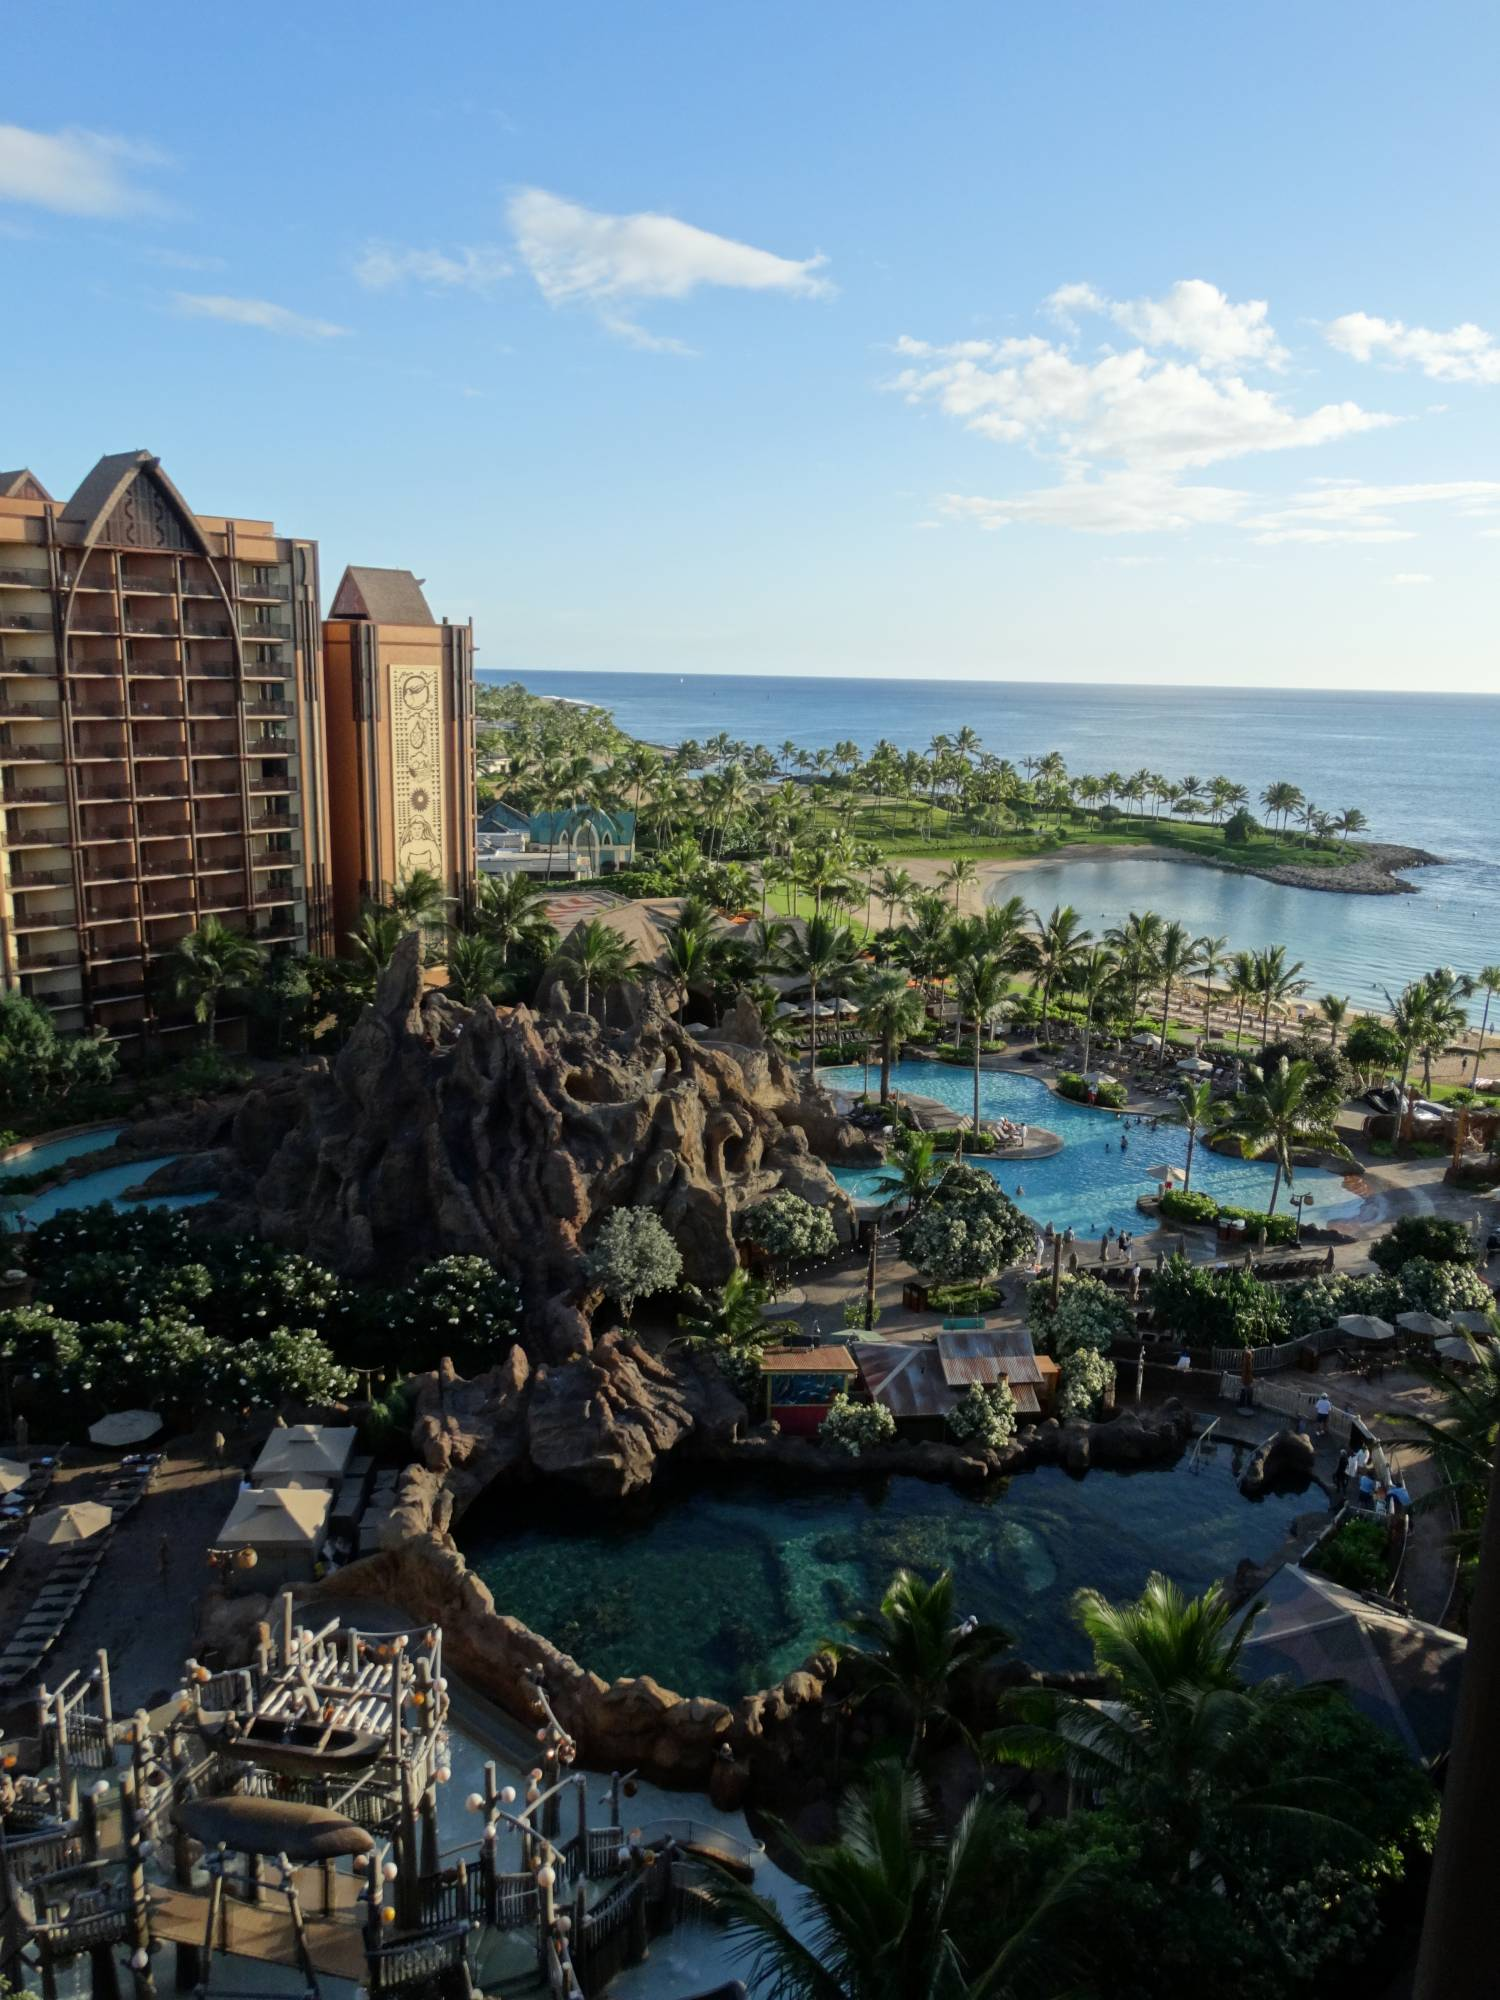 Learn more about planning your vacation to Aulani, a Disney Resort | PassPorter.com